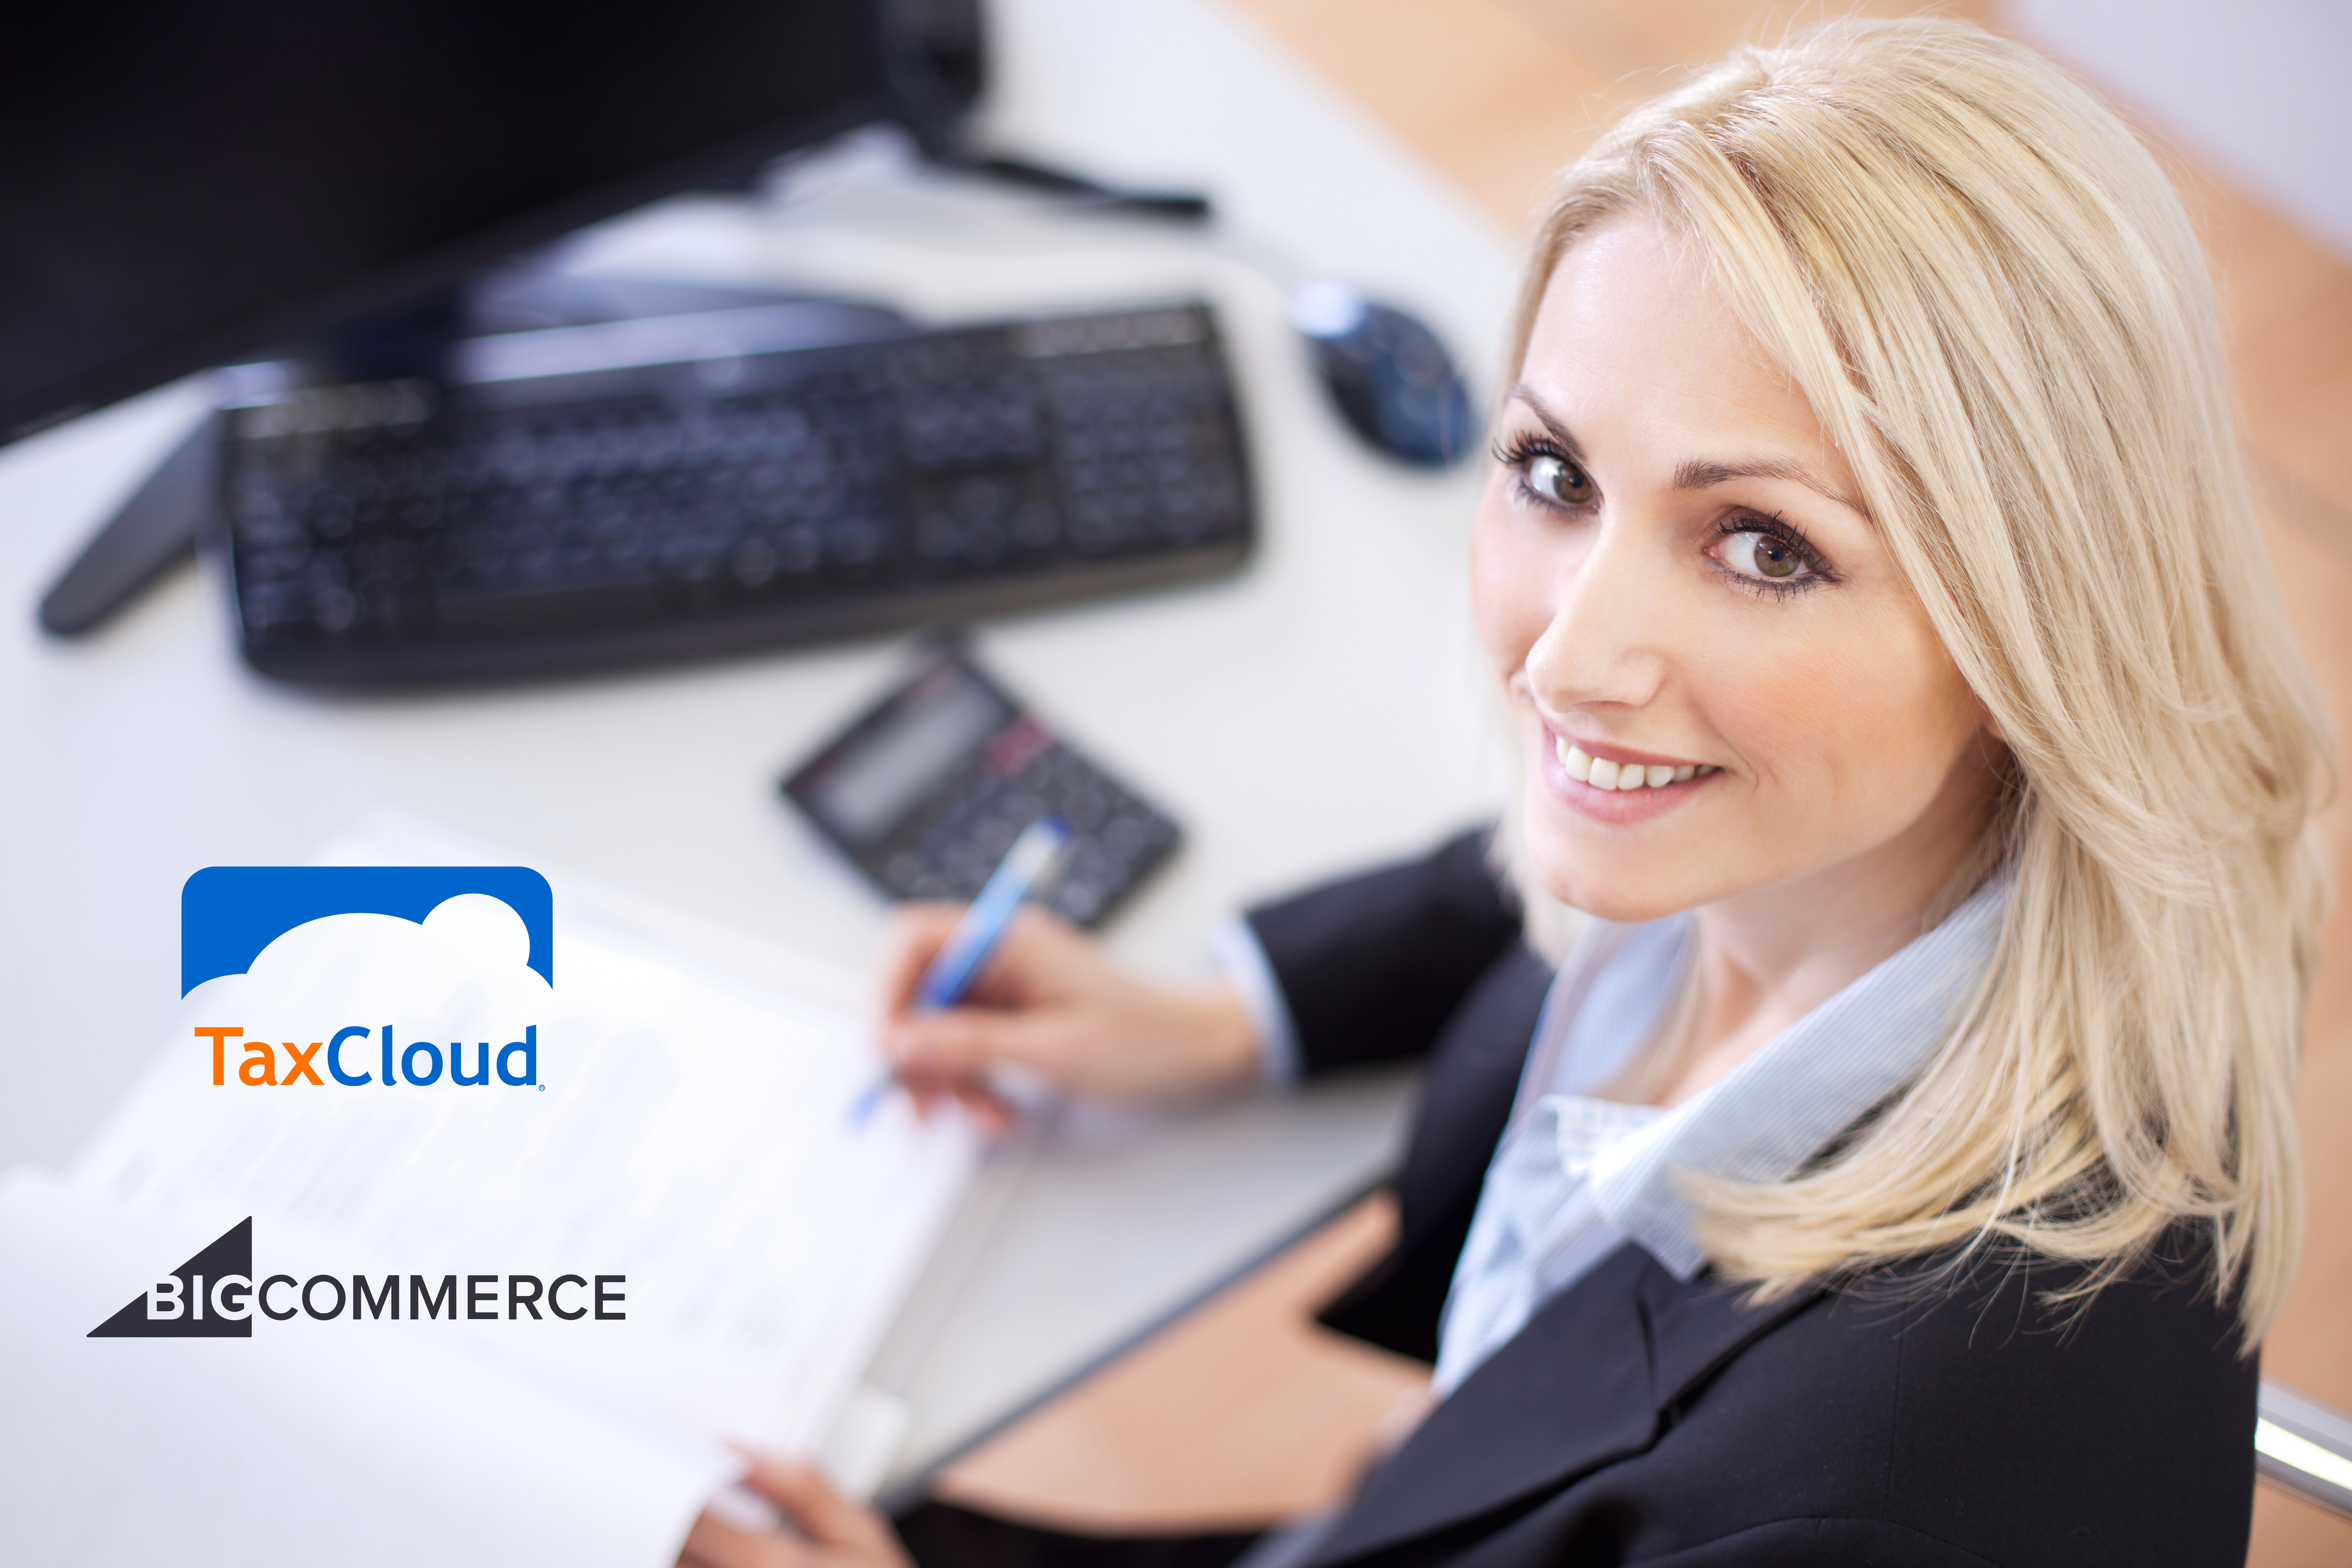 Sales Tax Made Easier Now For BigCommerce Merchants With New TaxCloud Integration